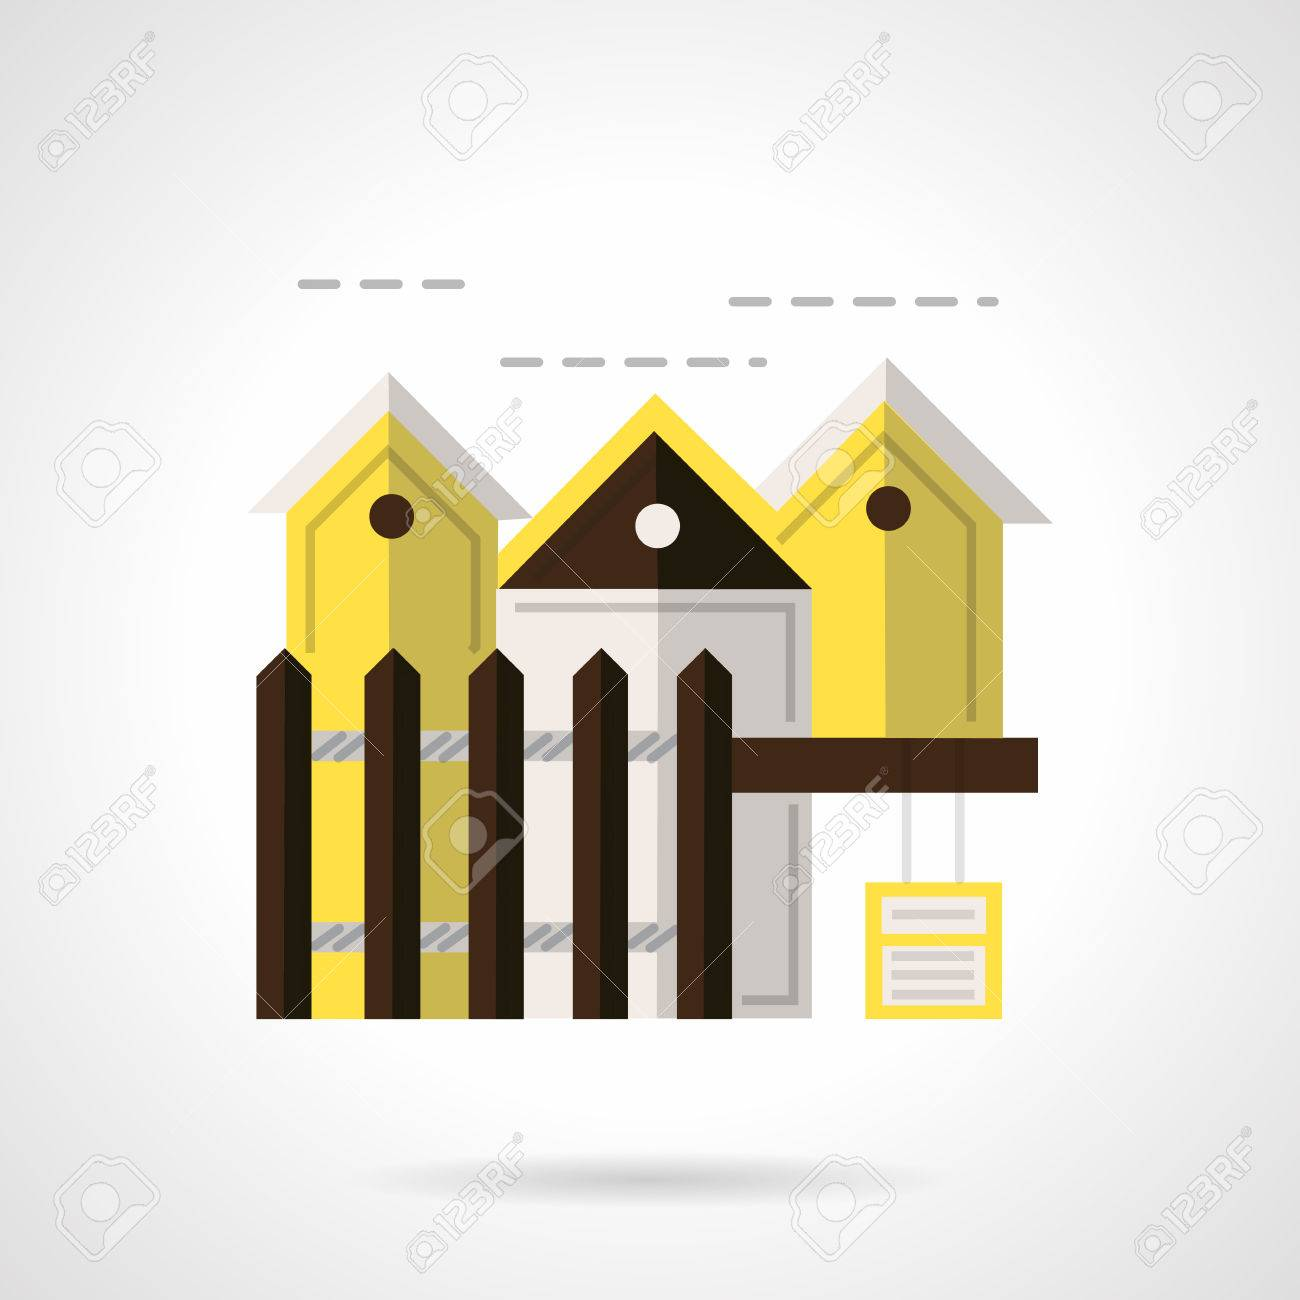 Houses row with brown fencing flat color style vector icon for houses row with brown fencing flat color style vector icon for rental of housing buycottarizona Gallery